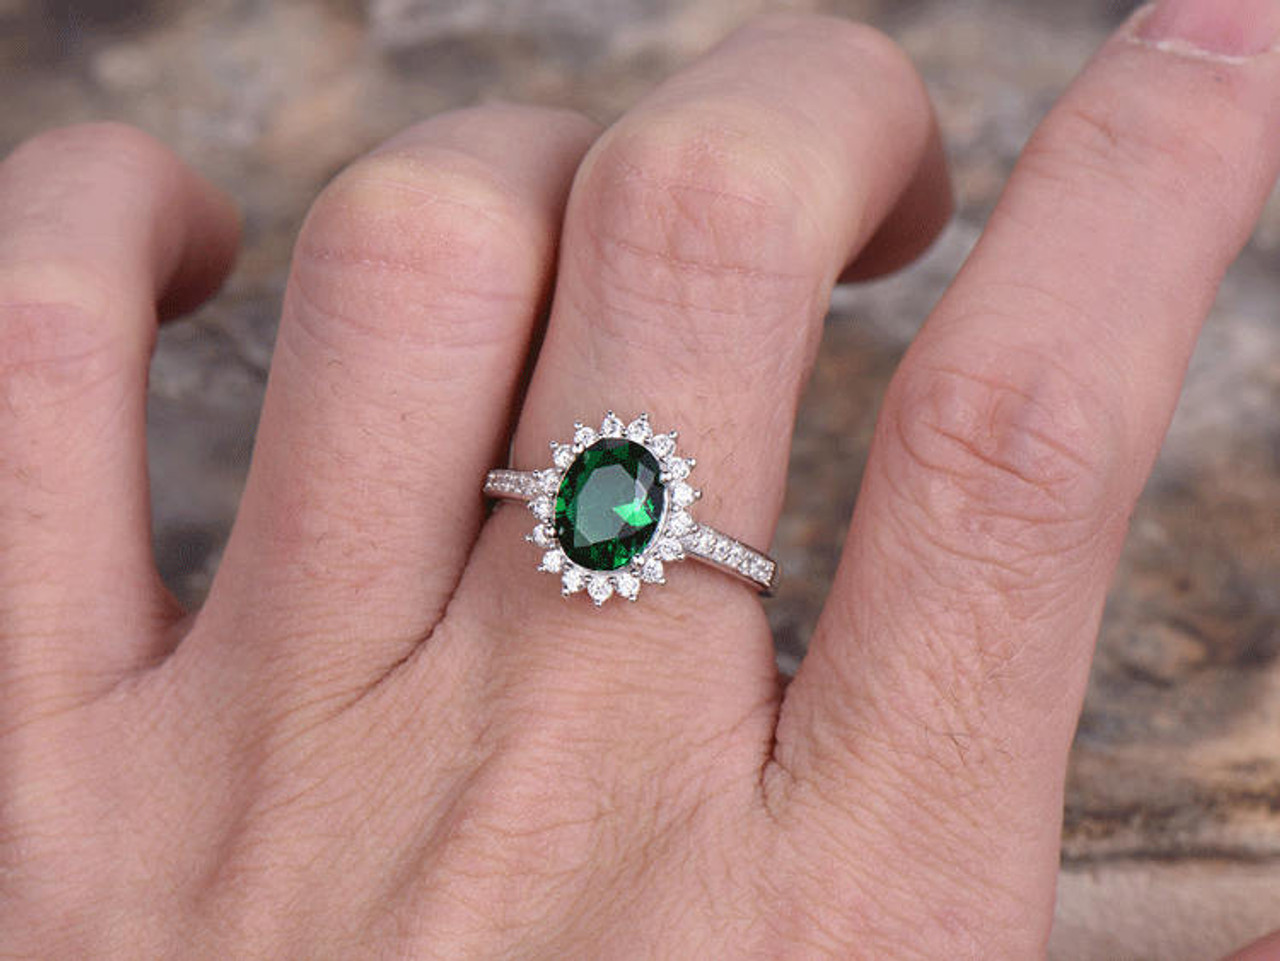 Emerald Engagement Ring 6x8mm Oval Cut Vintage Emerald Ring